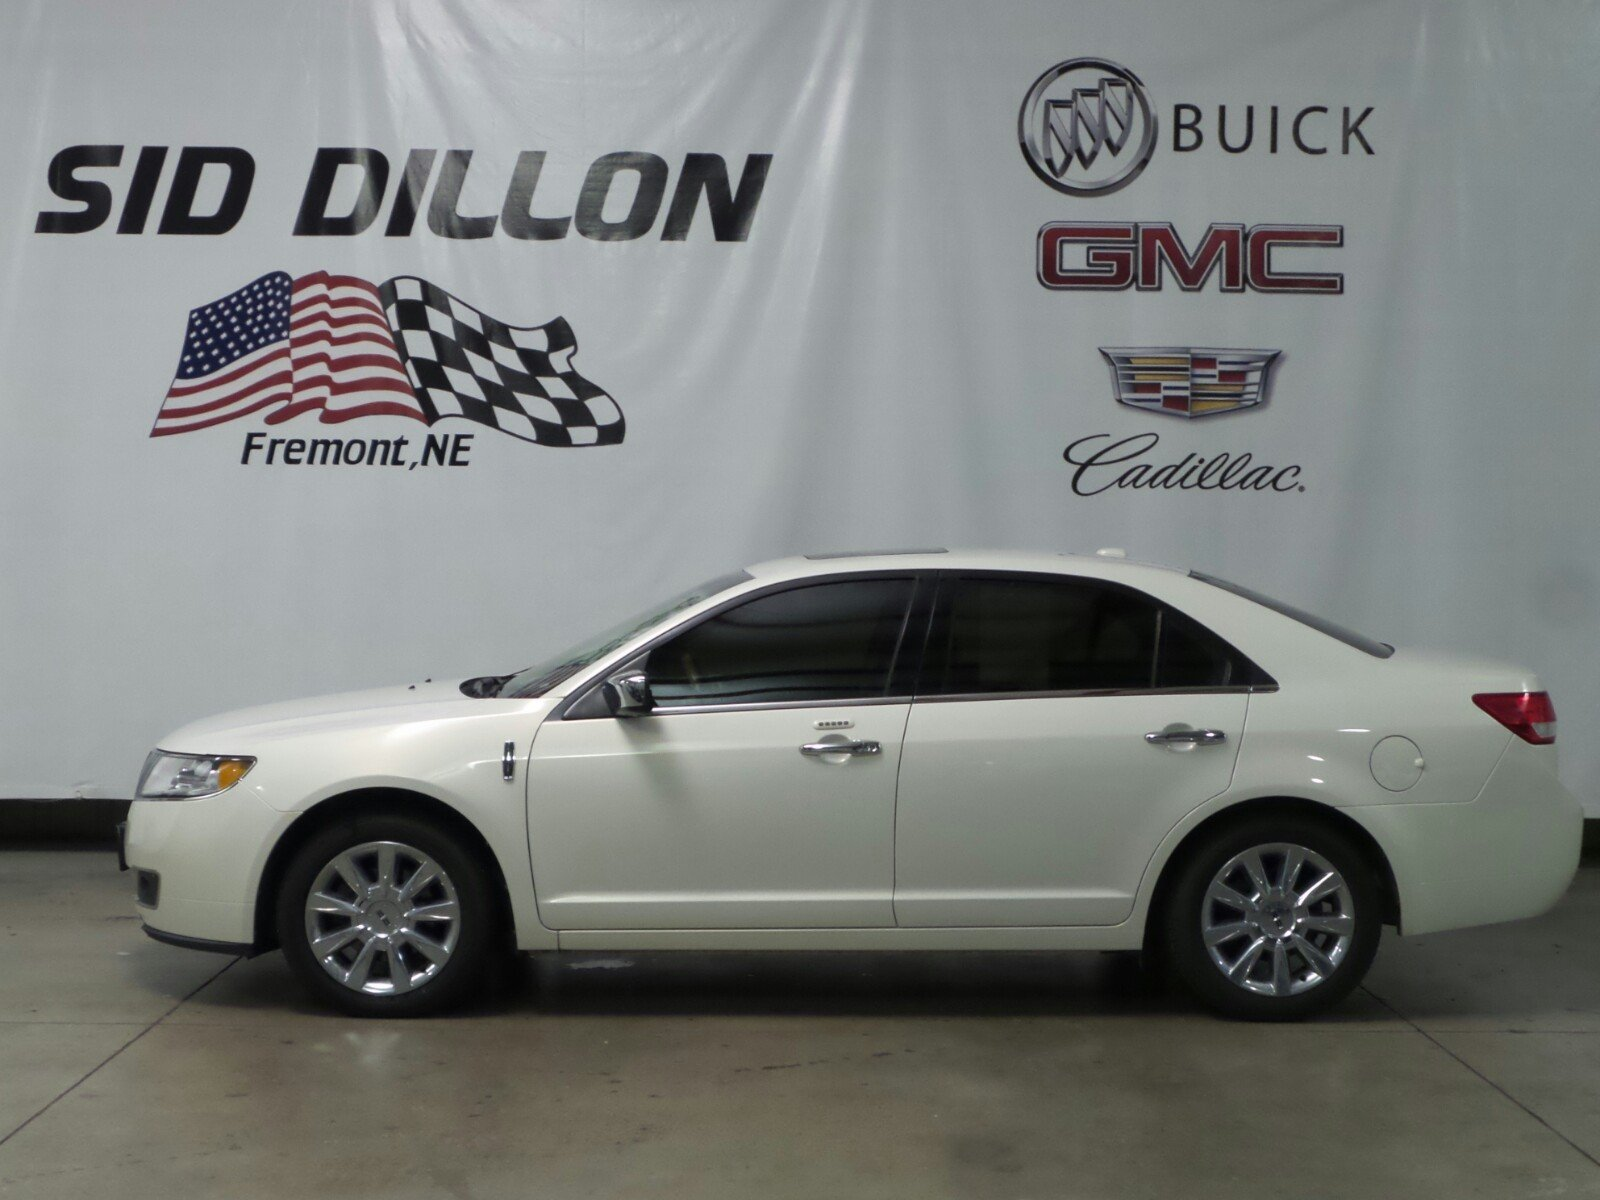 Pre-Owned 2012 Lincoln MKZ 4DR SDN AWD